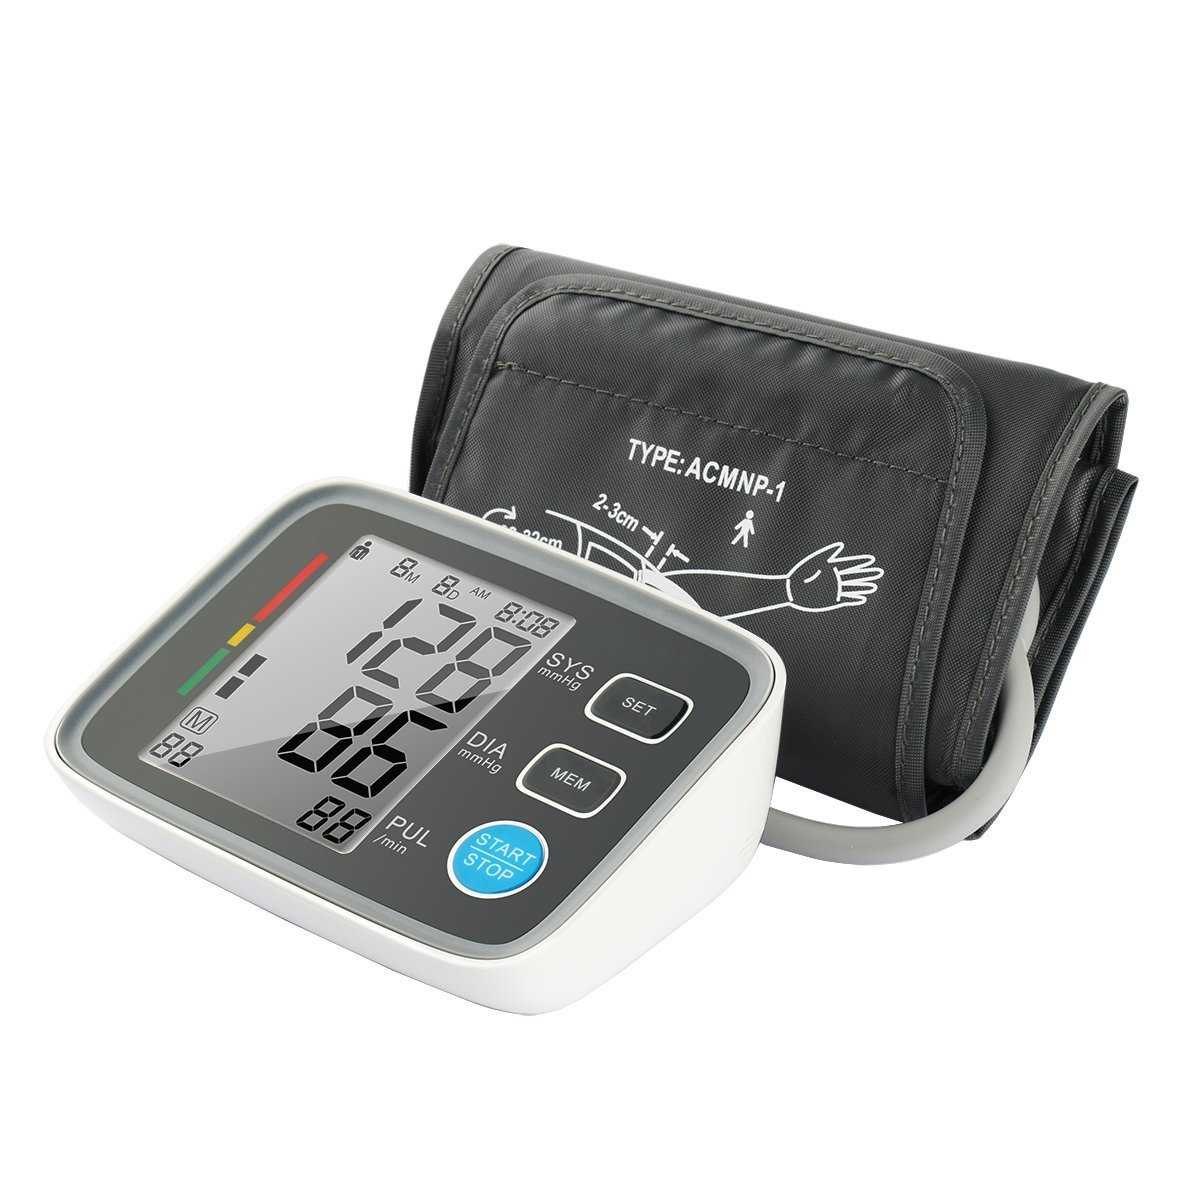 Fam-health Automatic Digital Upper Arm Blood Pressure Monitor Clinically Validated Sphygmomanometer Grey